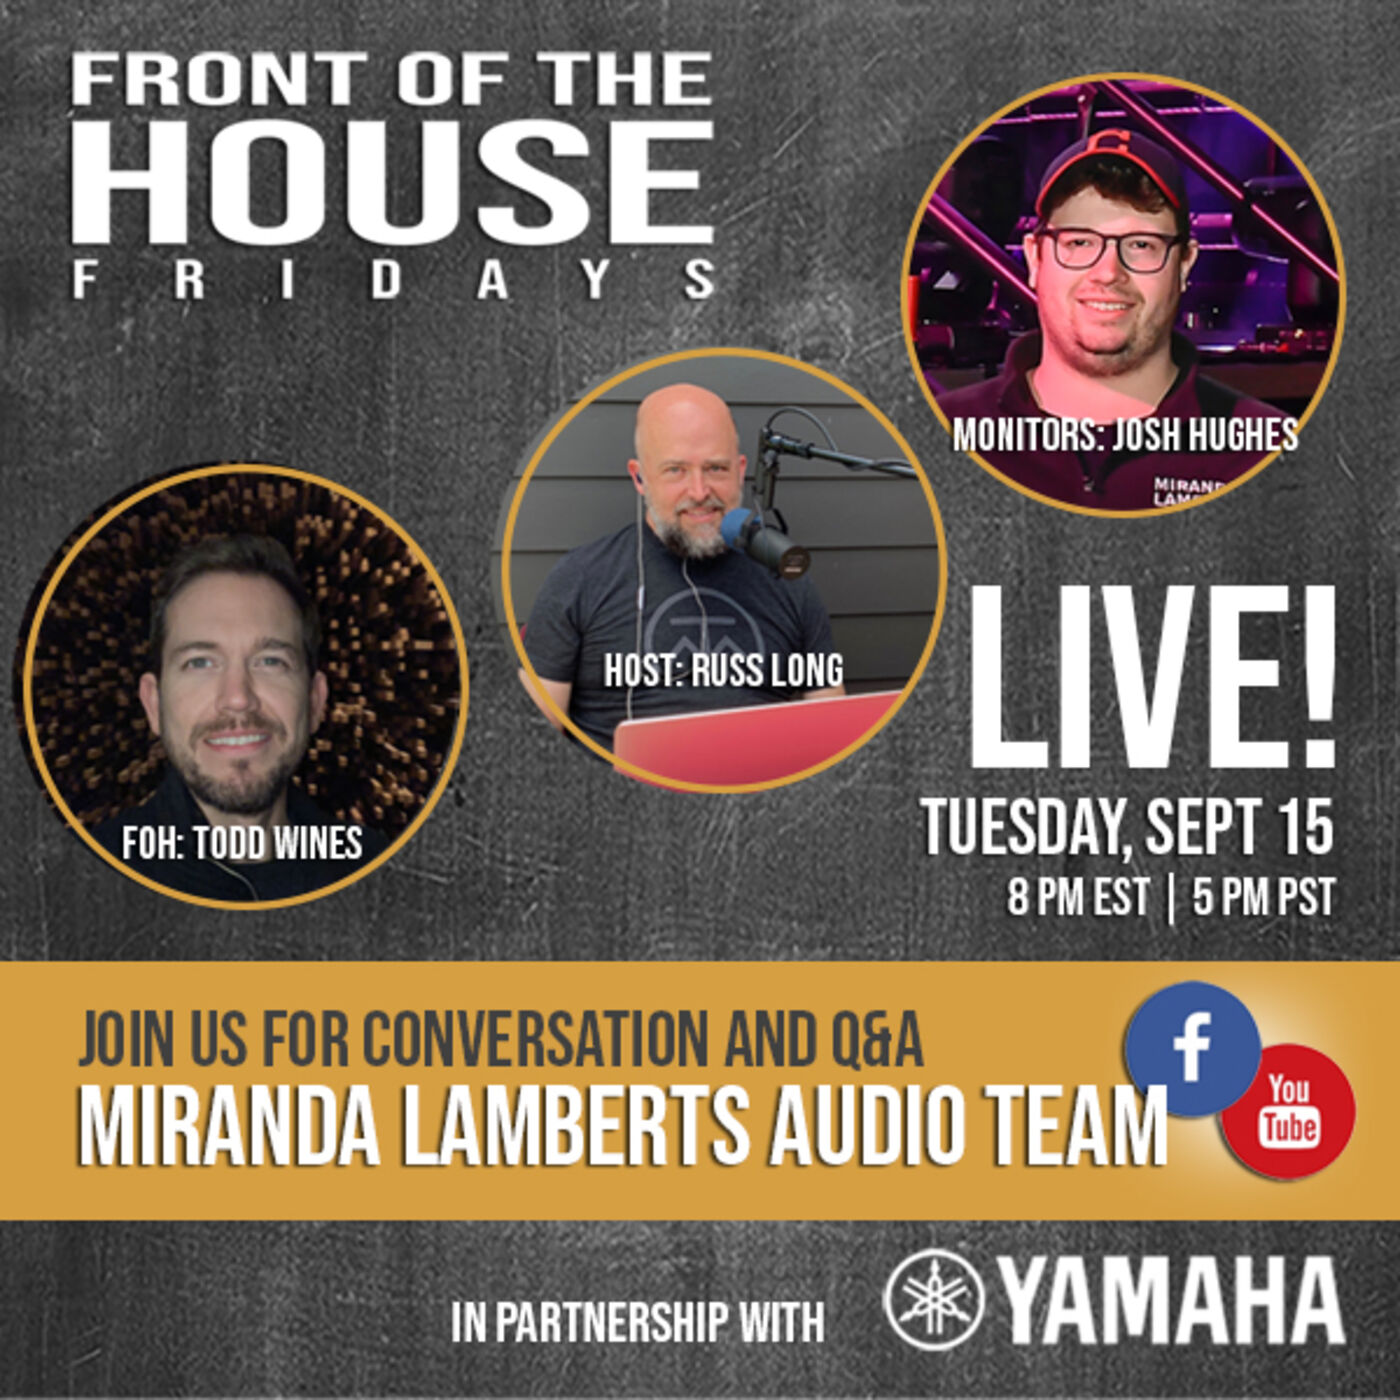 Episode 15: LIVE! Q&A With Miranda Lambert's Audio Team